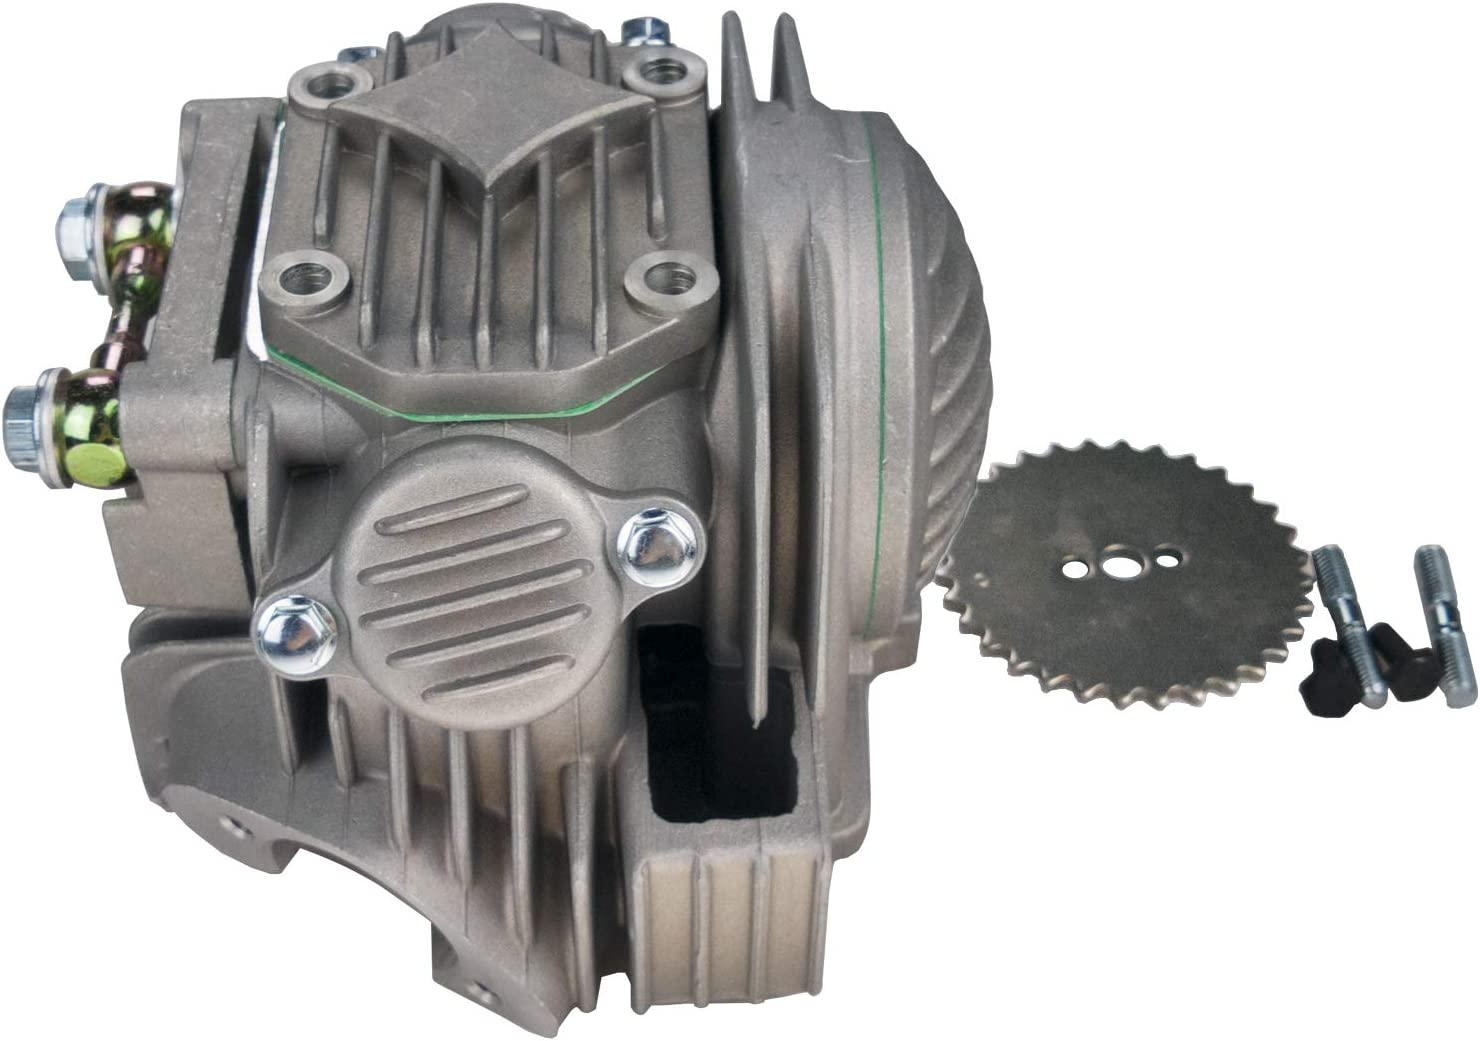 yx-140 cylinder head fitment Pit Bike Racing Cam kit Z-40 racing cam